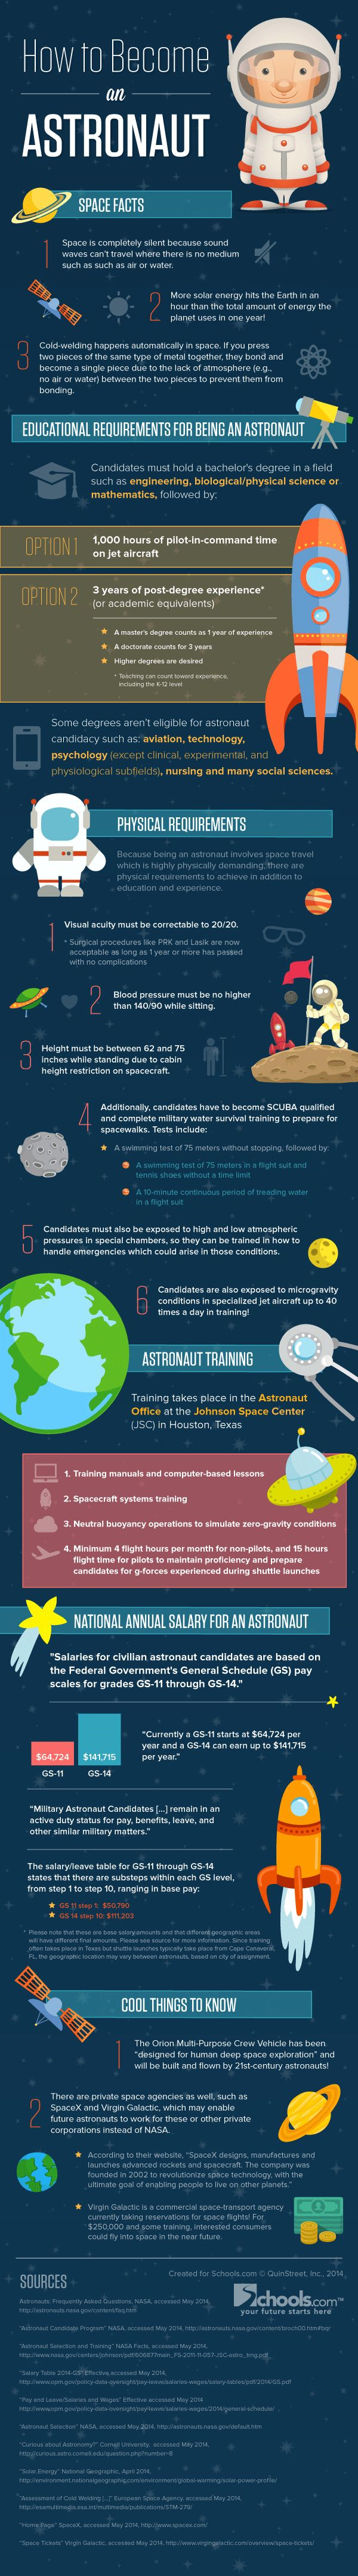 Where No Man Has Gone Before: Tips to Become an Astronaut - Tipsographic